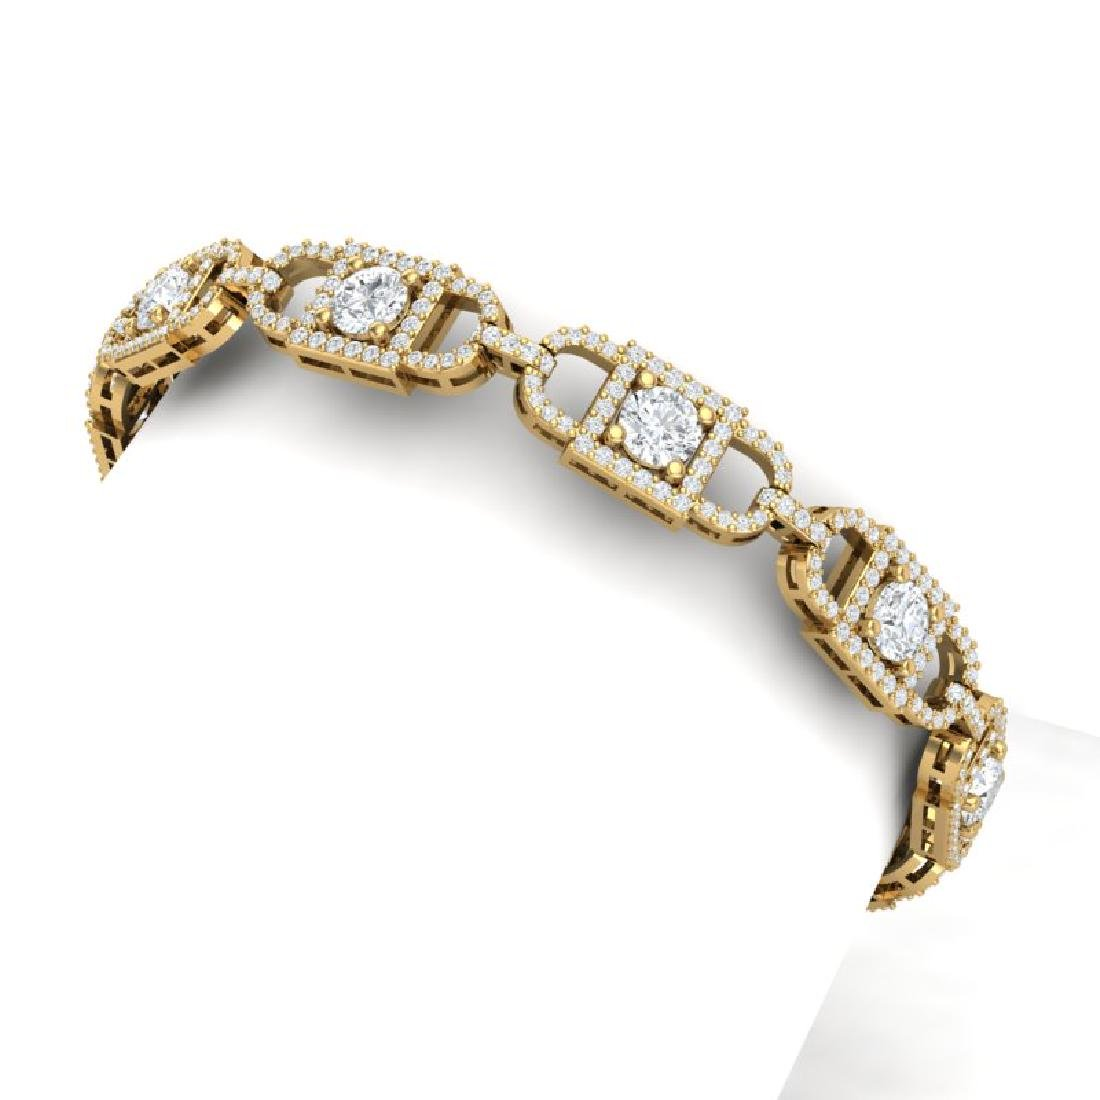 8 CTW Certified SI/I Diamond Halo Bracelet 18K Yellow